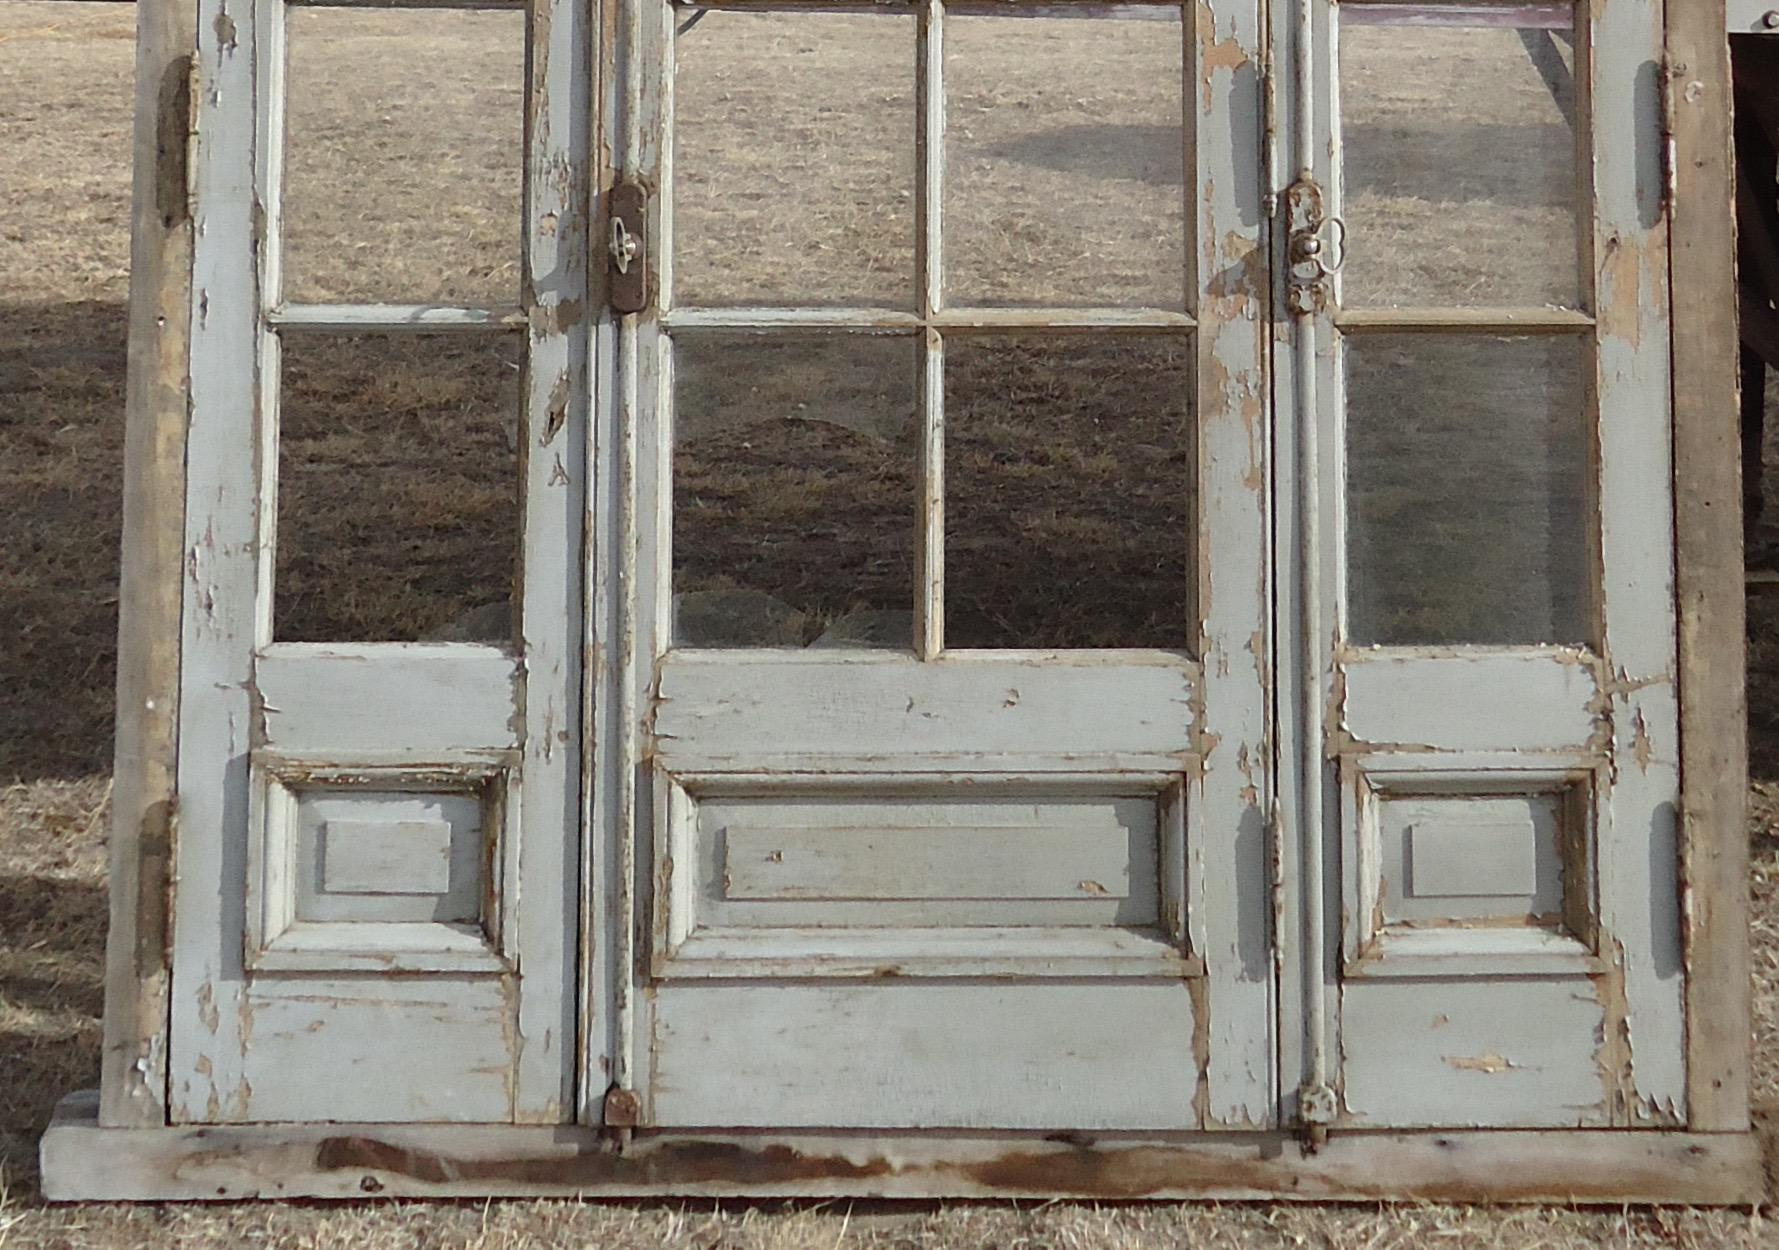 Antique French Arched Transom Doors - Image 6 of 11  sc 1 st  Chairish & Antique French Arched Transom Doors | Chairish